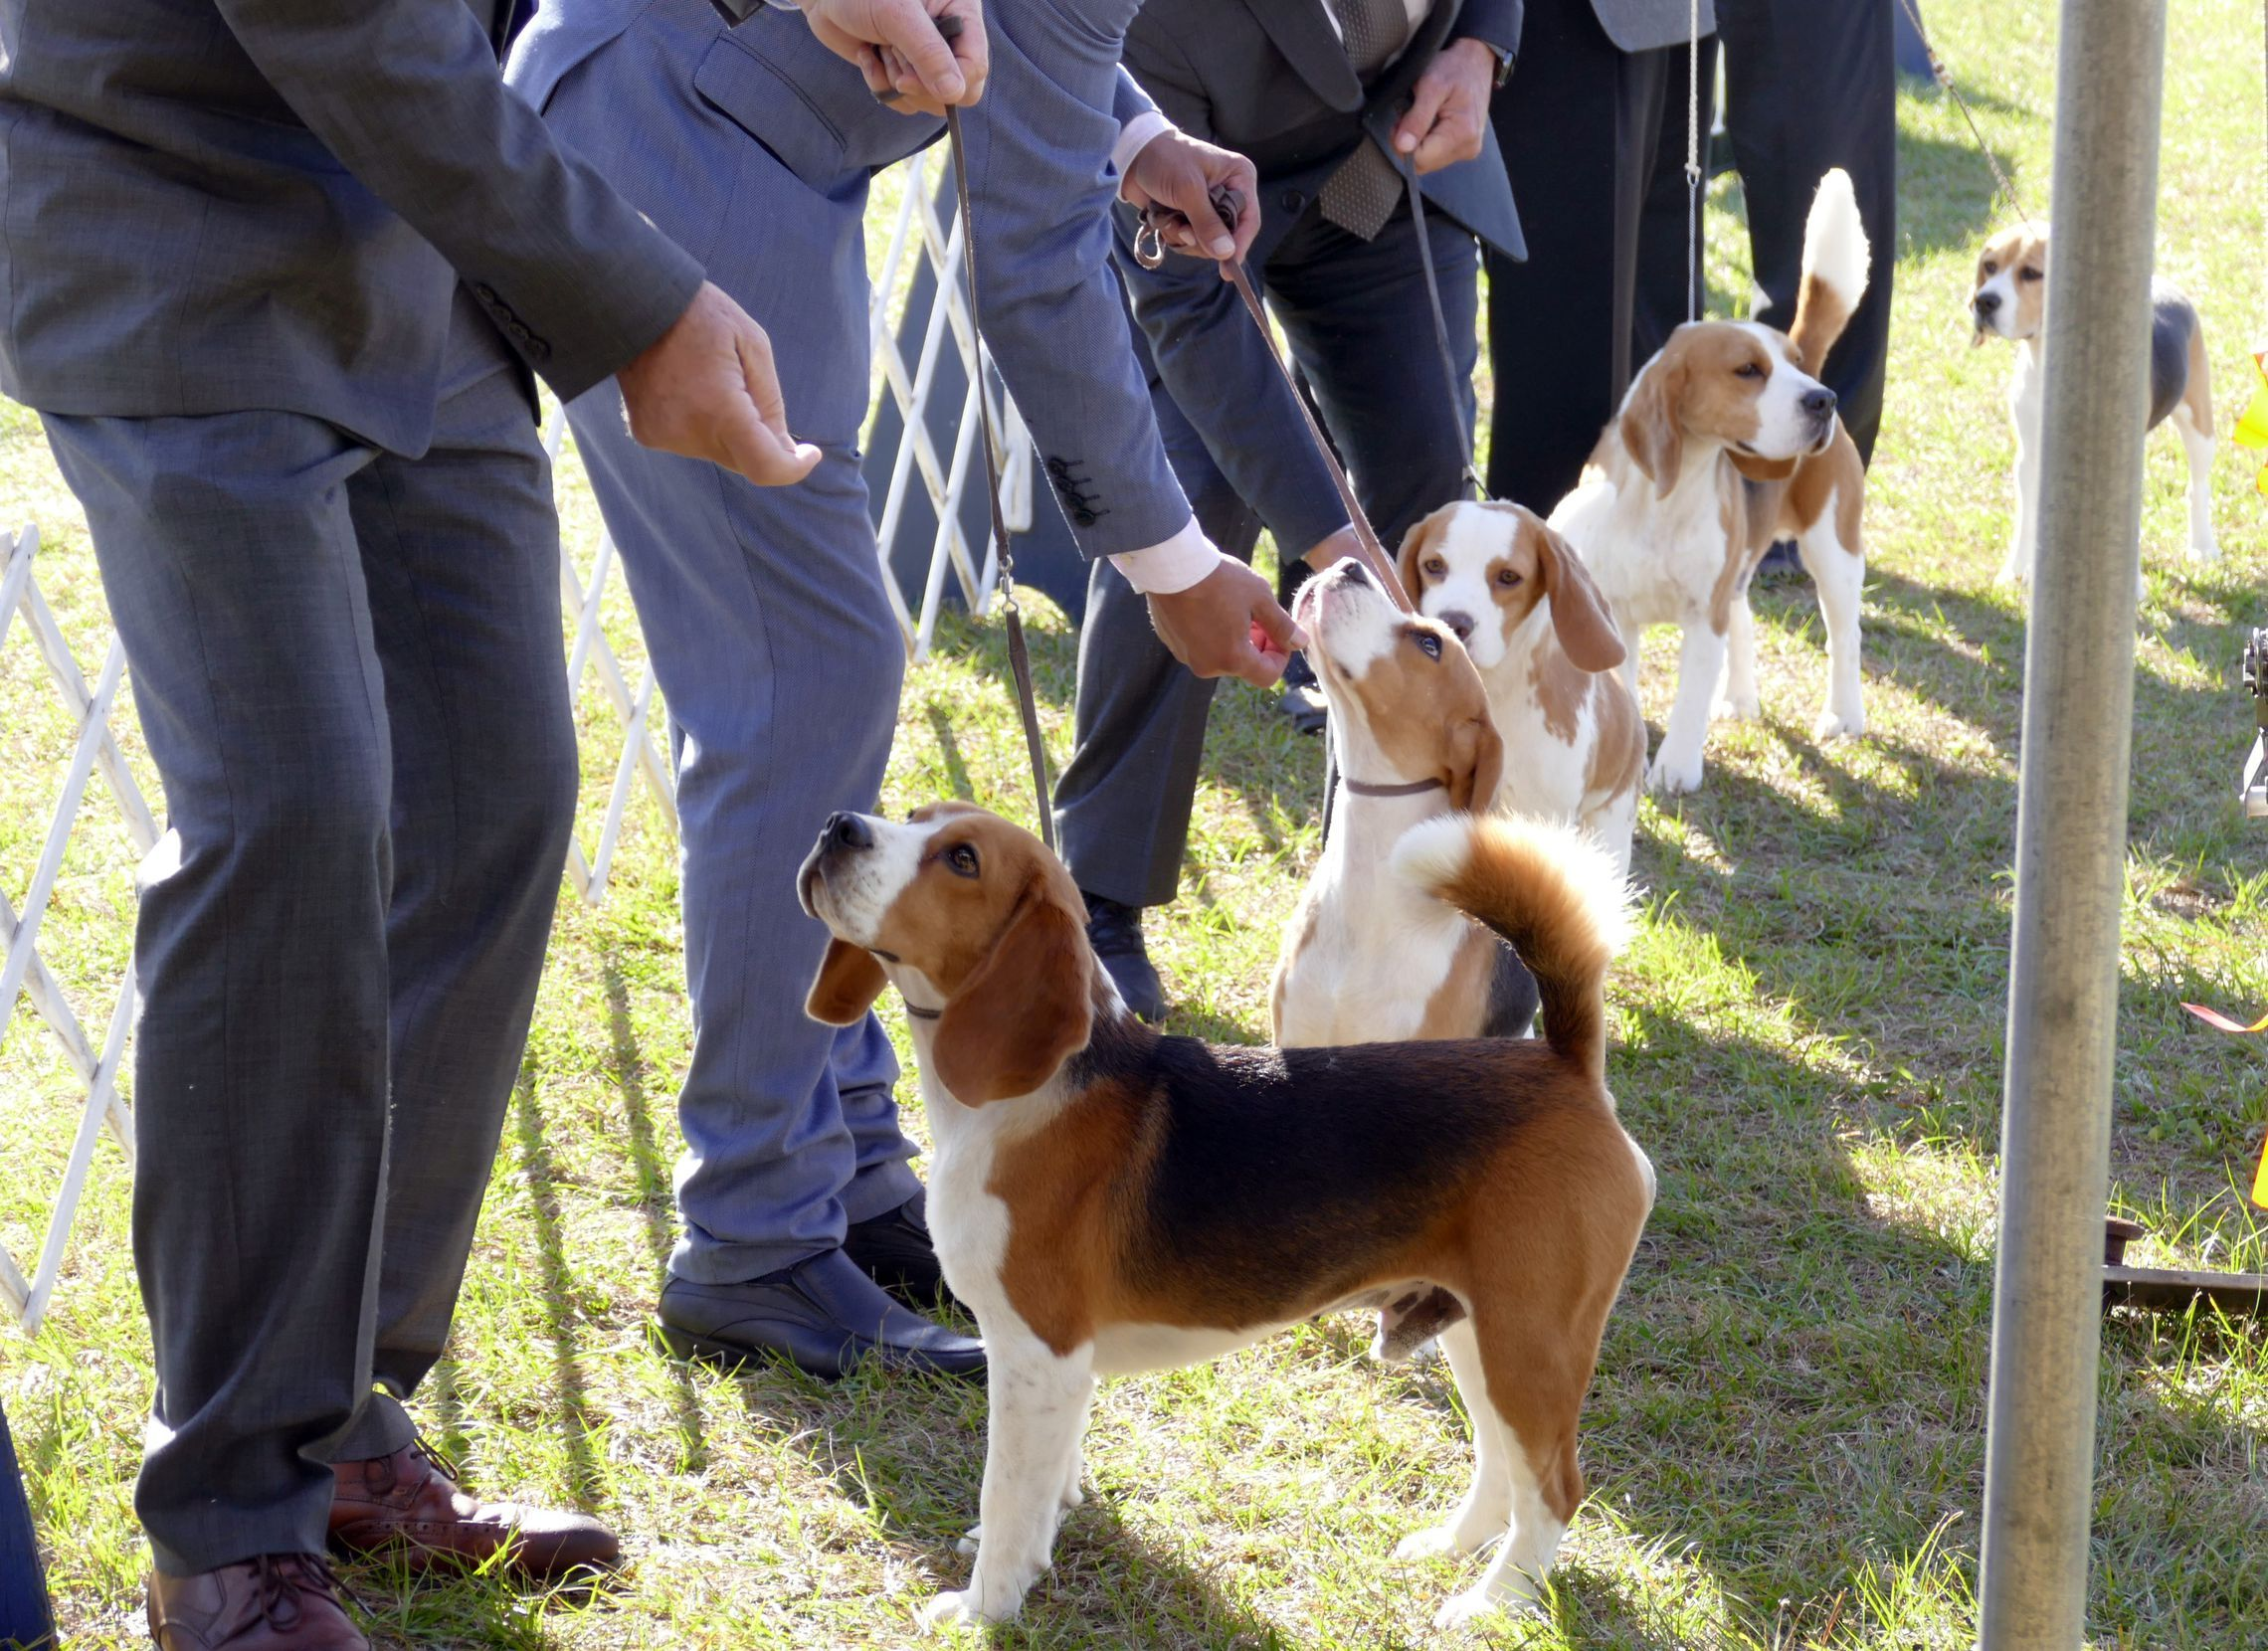 Woof Woof 15 000 Times Woof In 2020 Dog Show Beagle Canine Family